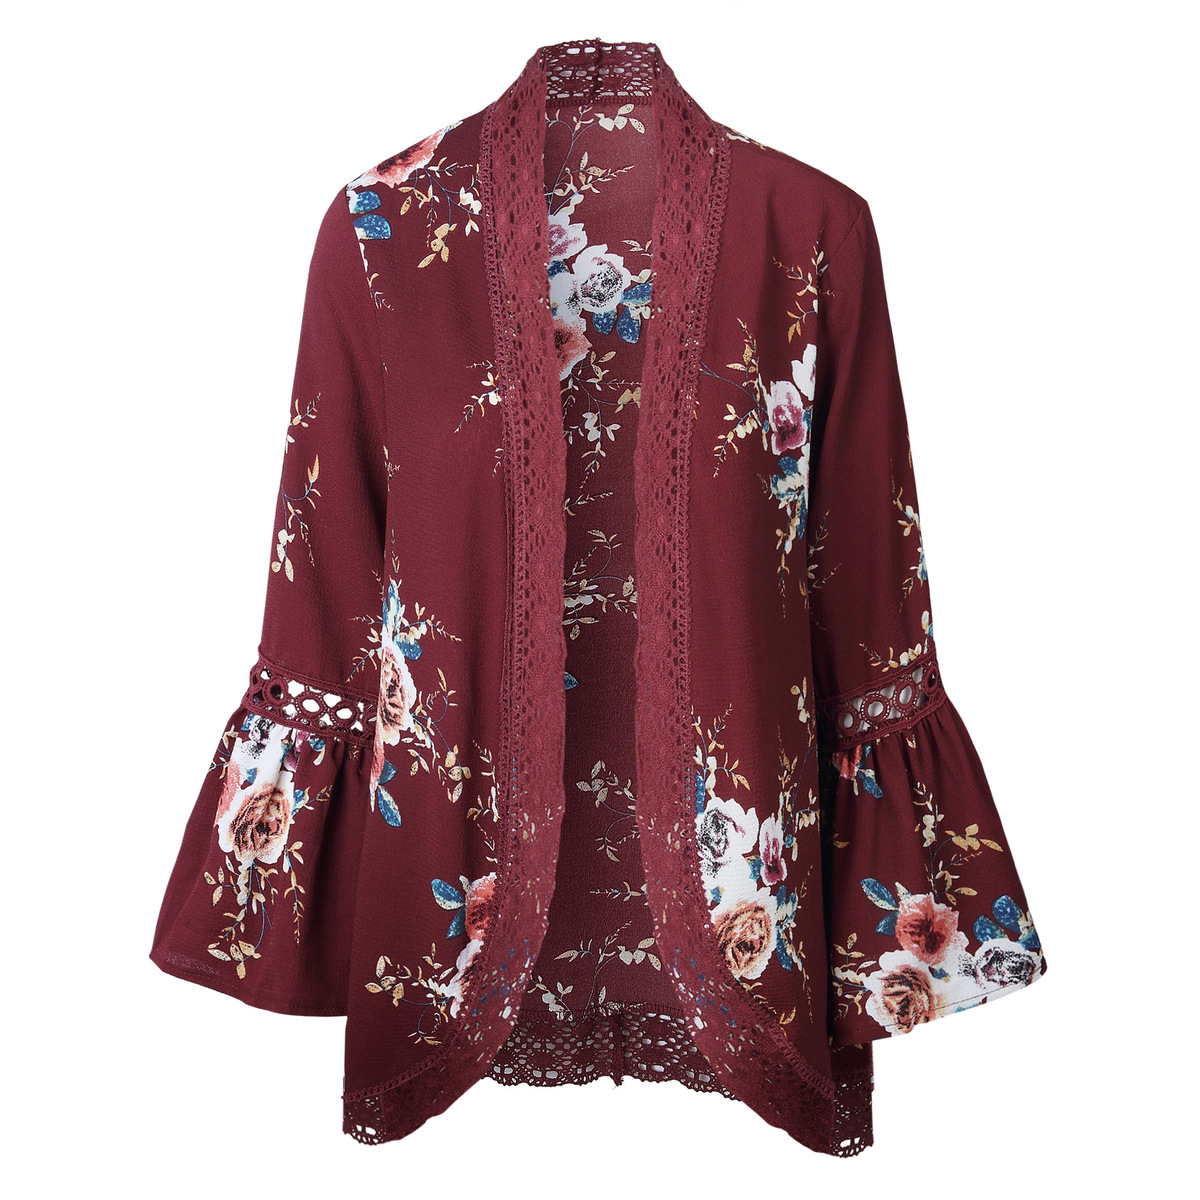 HTB1ZRk7kSMmBKNjSZTEq6ysKpXaV Women Plus Size Loose Casual Basic Jackets Female 2018 Autumn Long Flare Sleeve Floral Print Outwear Coat Open Stitch Clothing